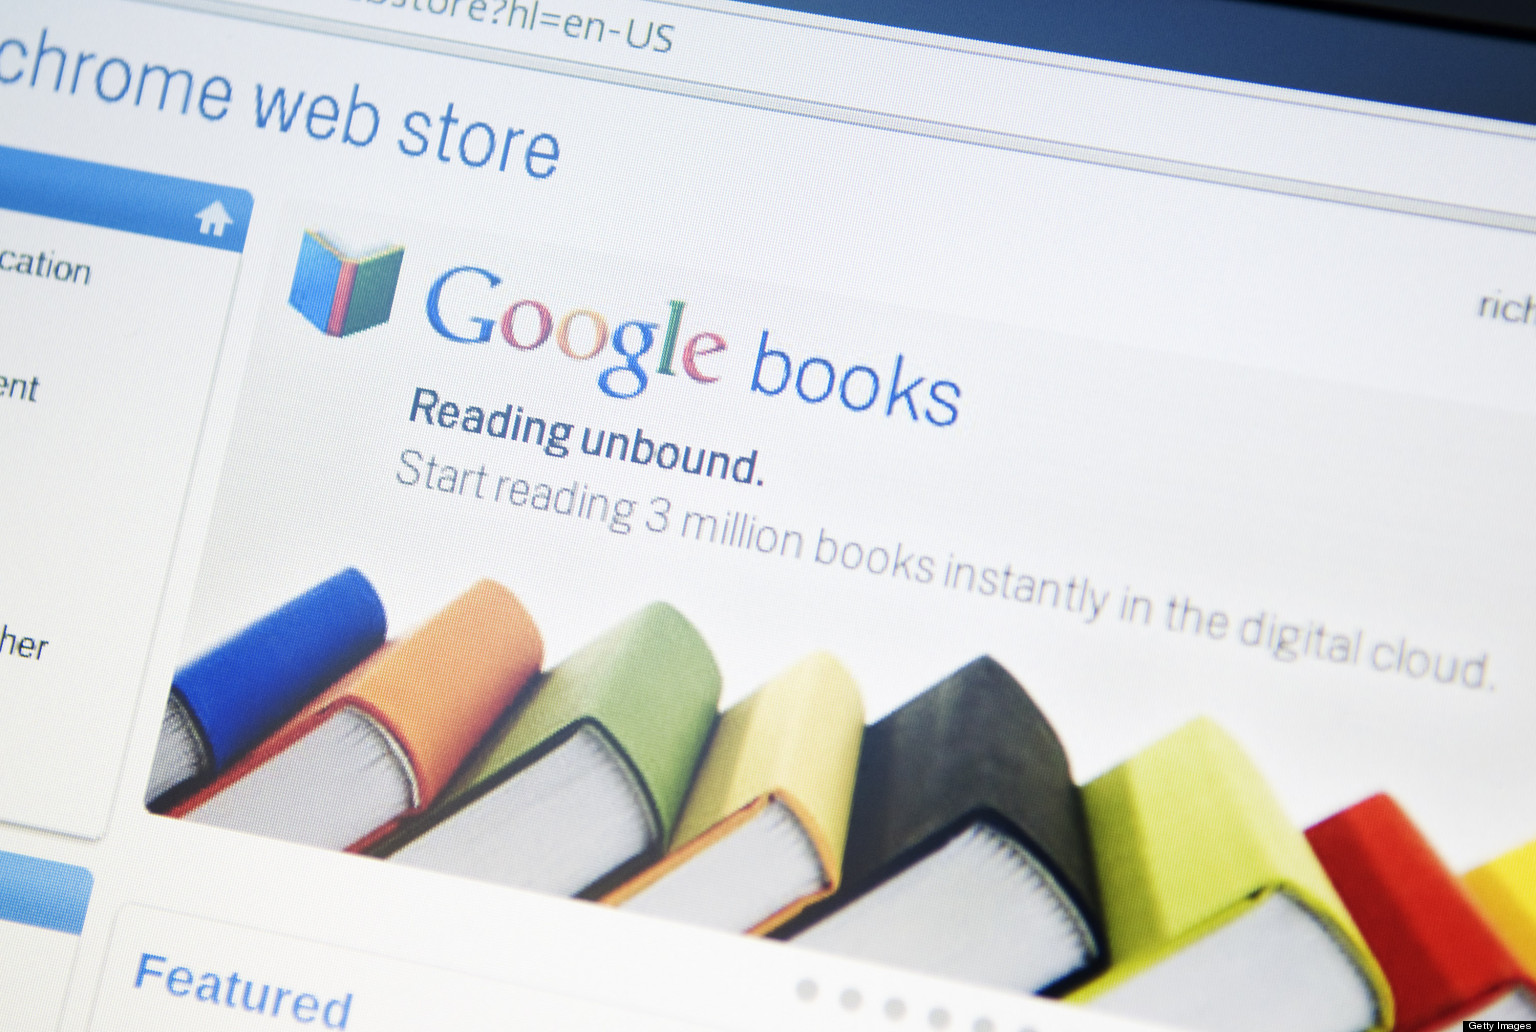 How to Download Books from Google - PCTipsBox